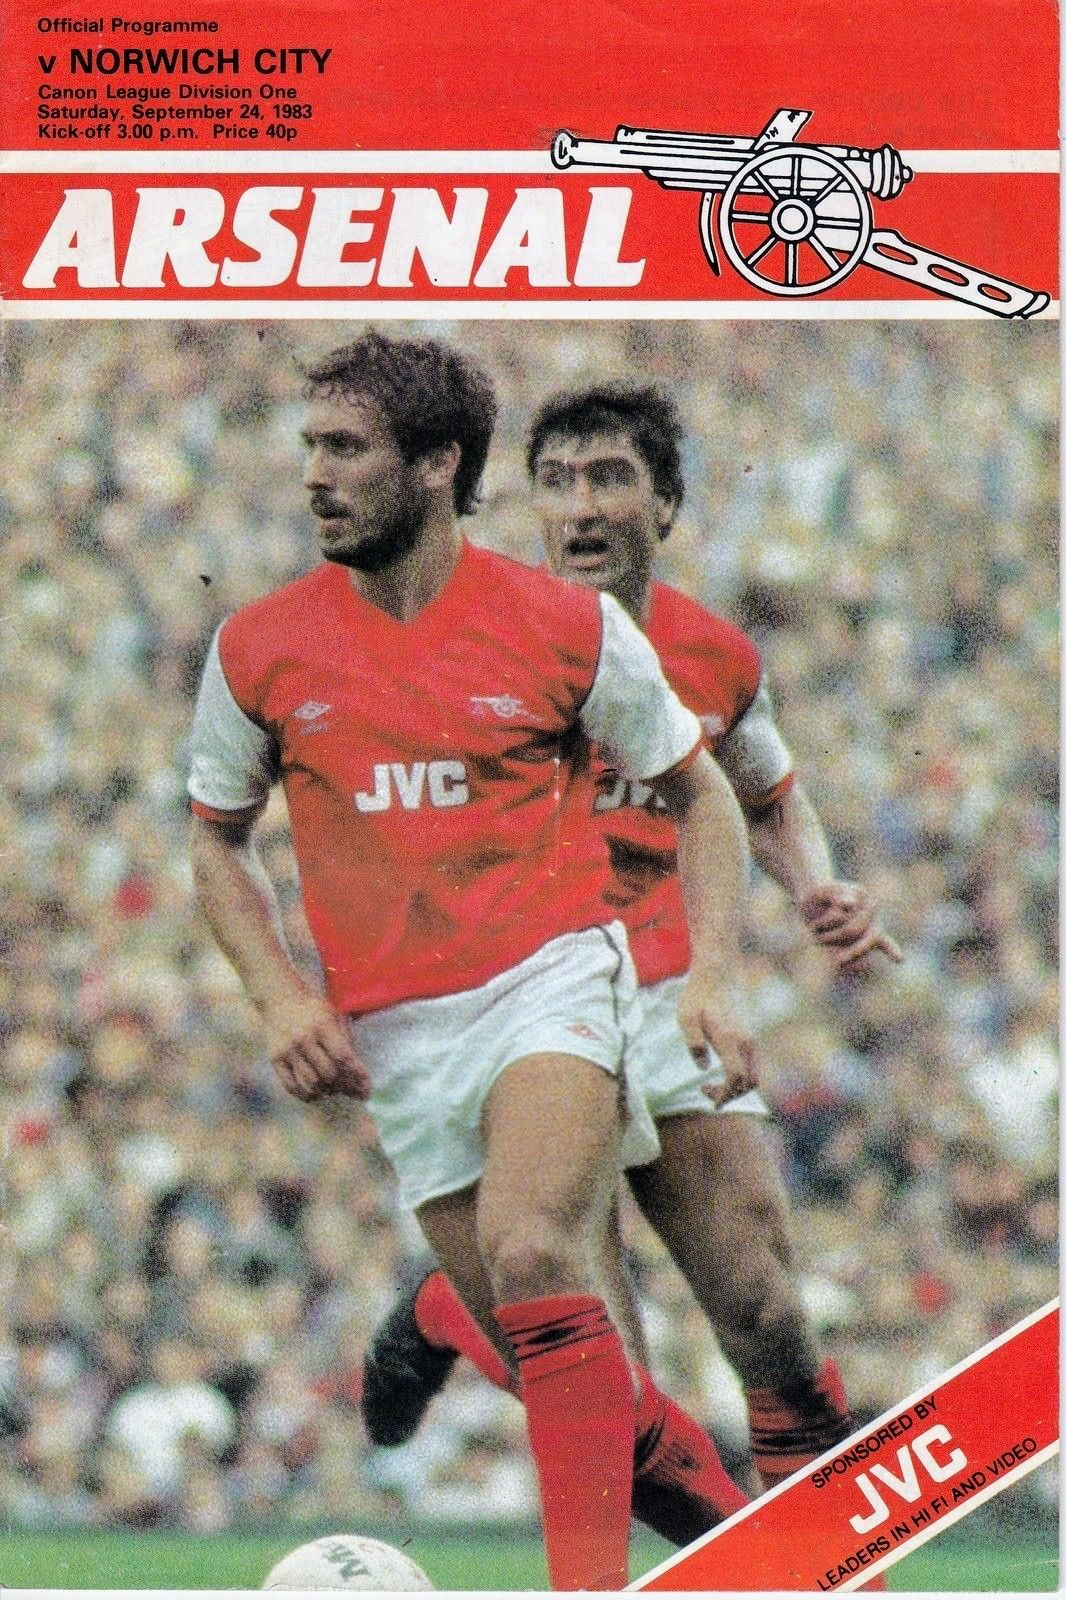 Arsenal 3 Norwich City 0 in Sept 1983 at Highbury. The